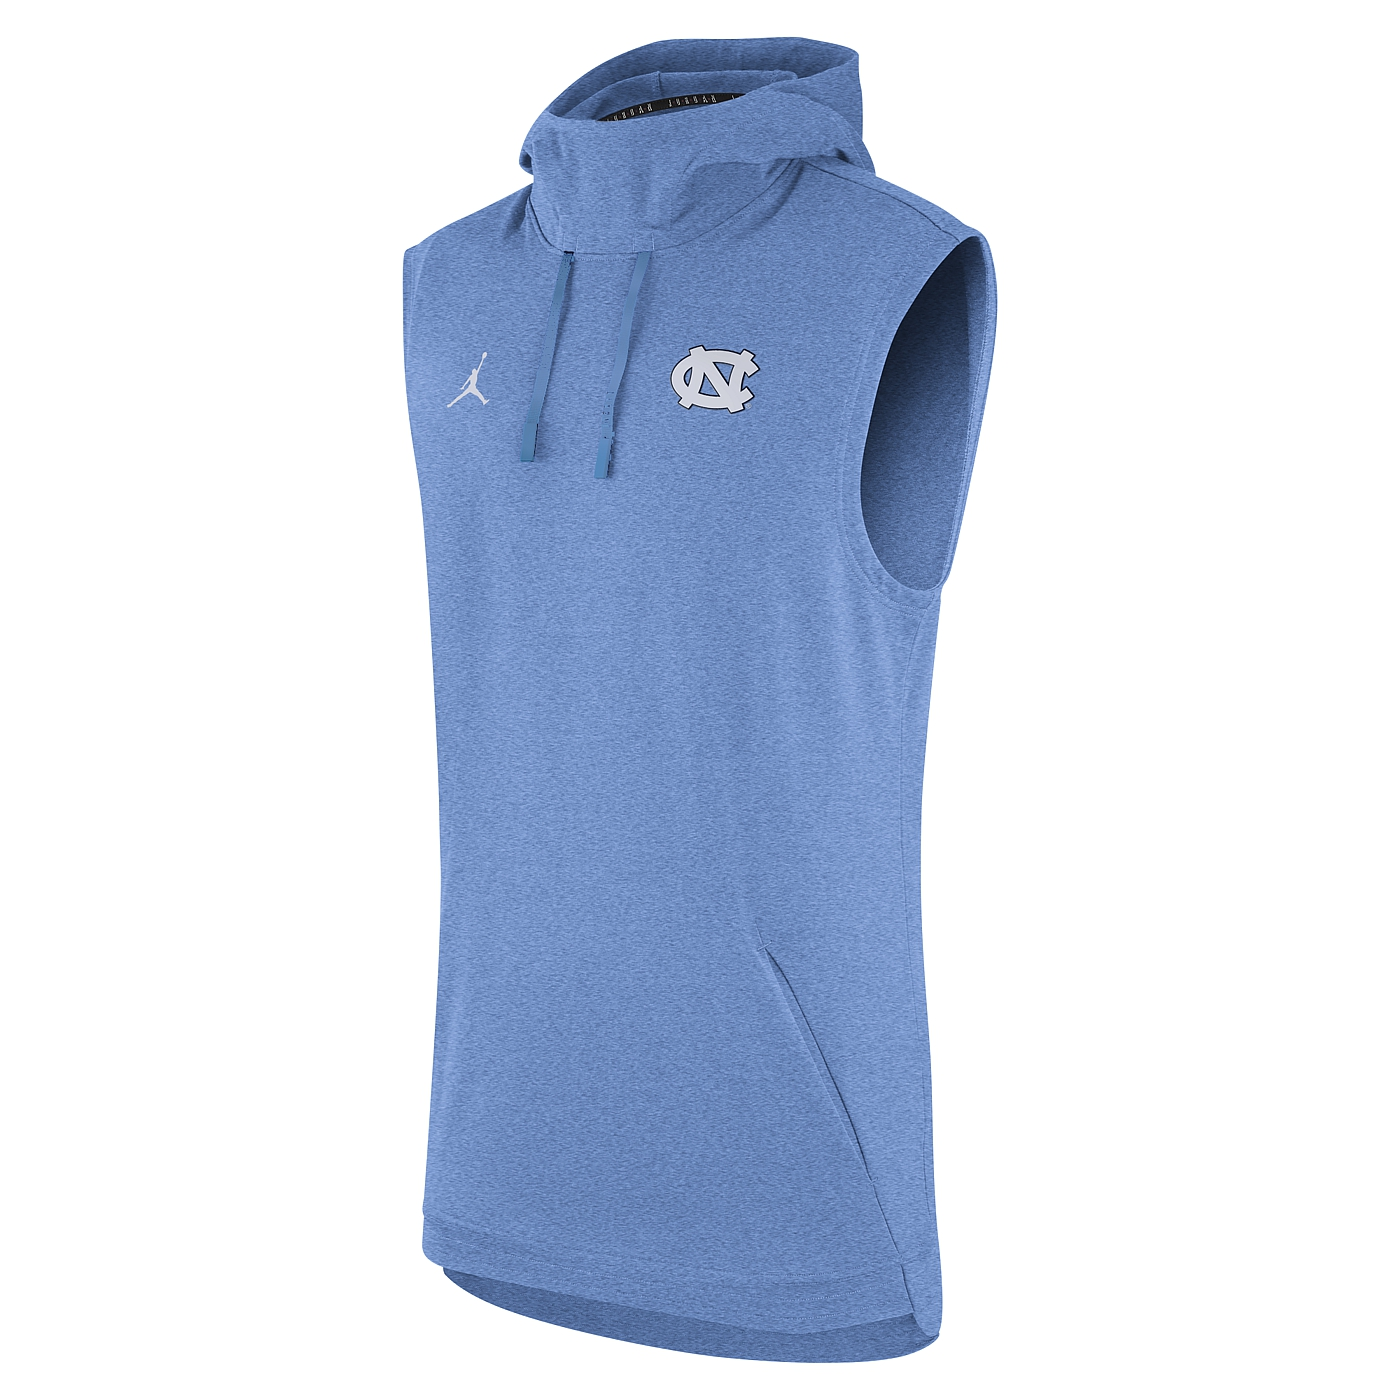 96a88dd97af1aa Nike Sleeveless Tee Shirts – EDGE Engineering and Consulting Limited